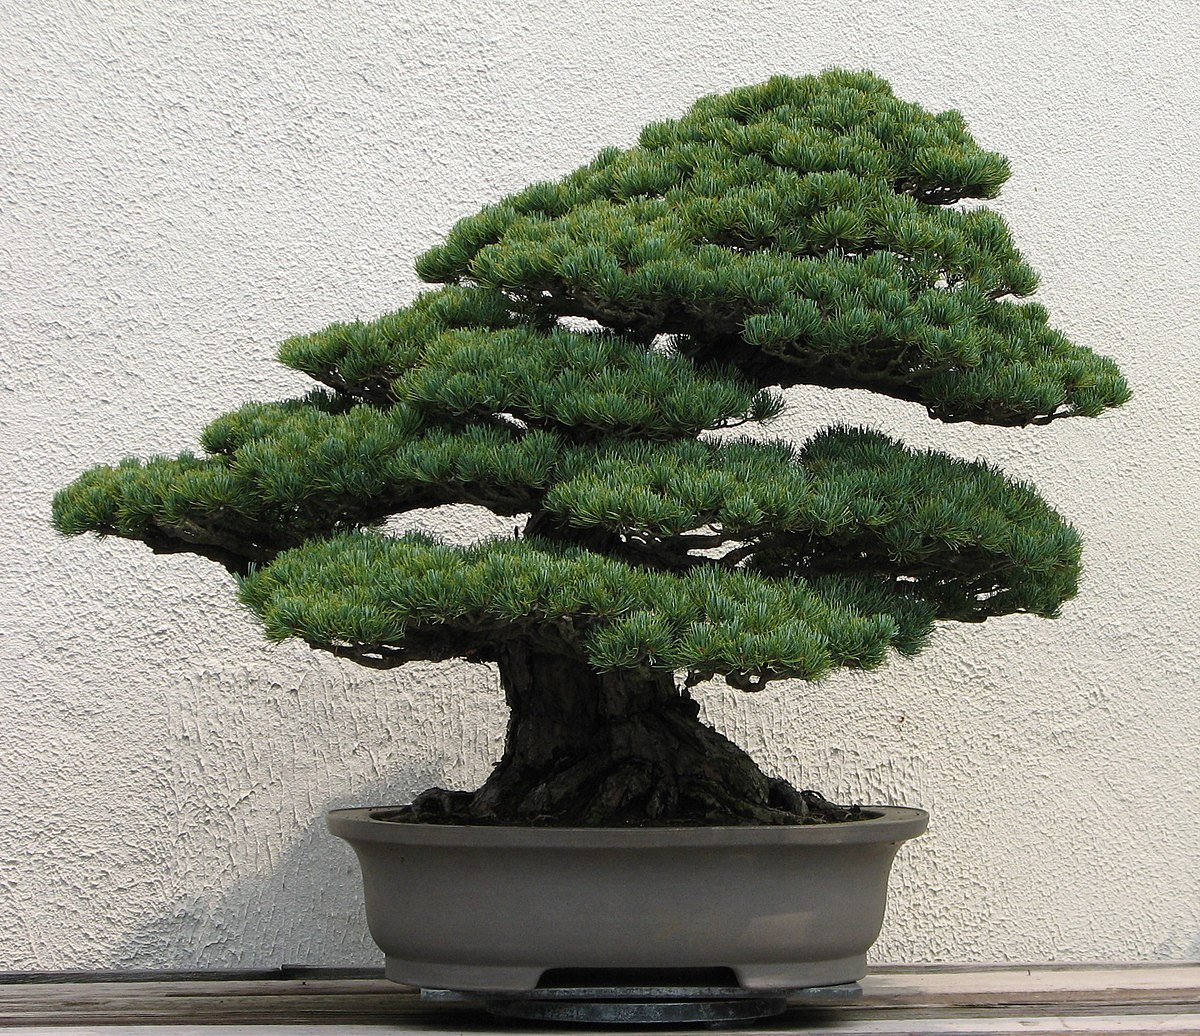 Bonsai tree you can look fast growing trees you can look original bonsai tree you can look bonsai garden